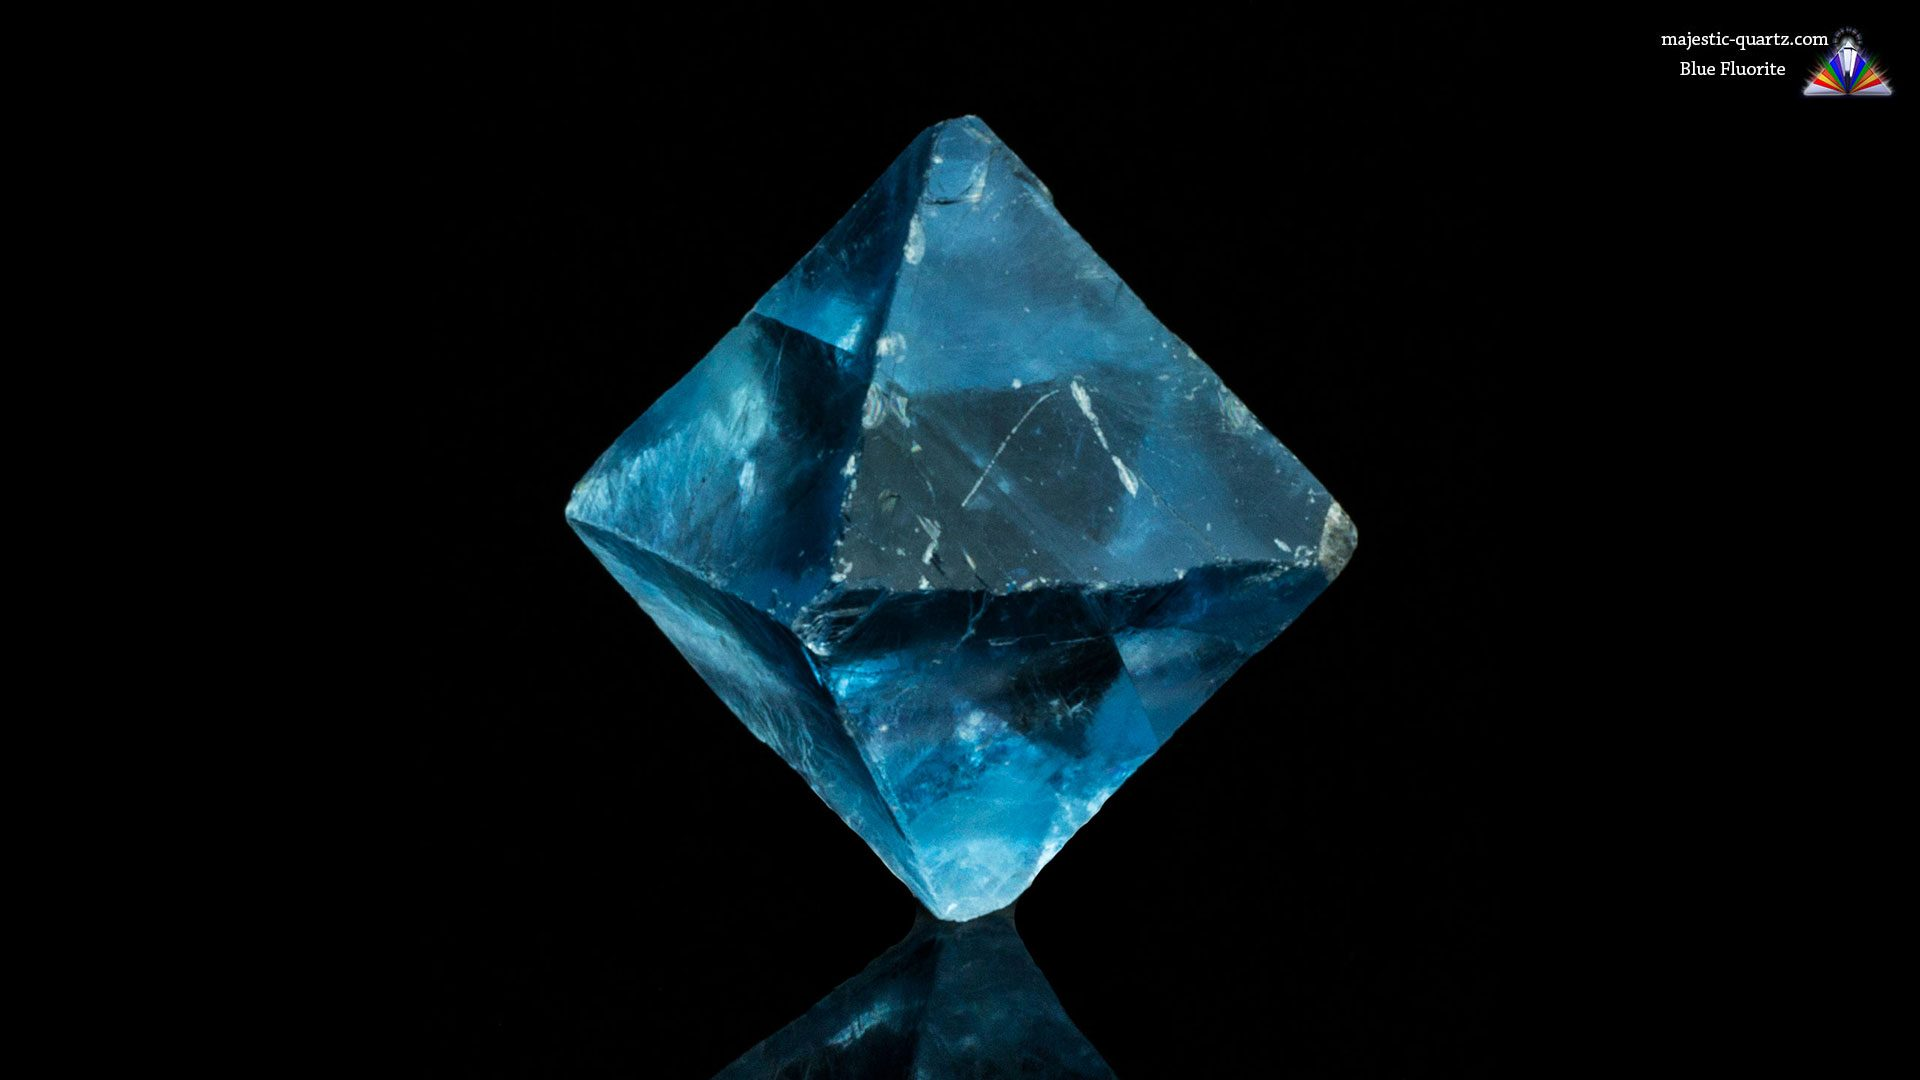 Terminated Blue Fluorite Crystal Specimen - Mineral Specimen - Photograph by Anthony Bradford